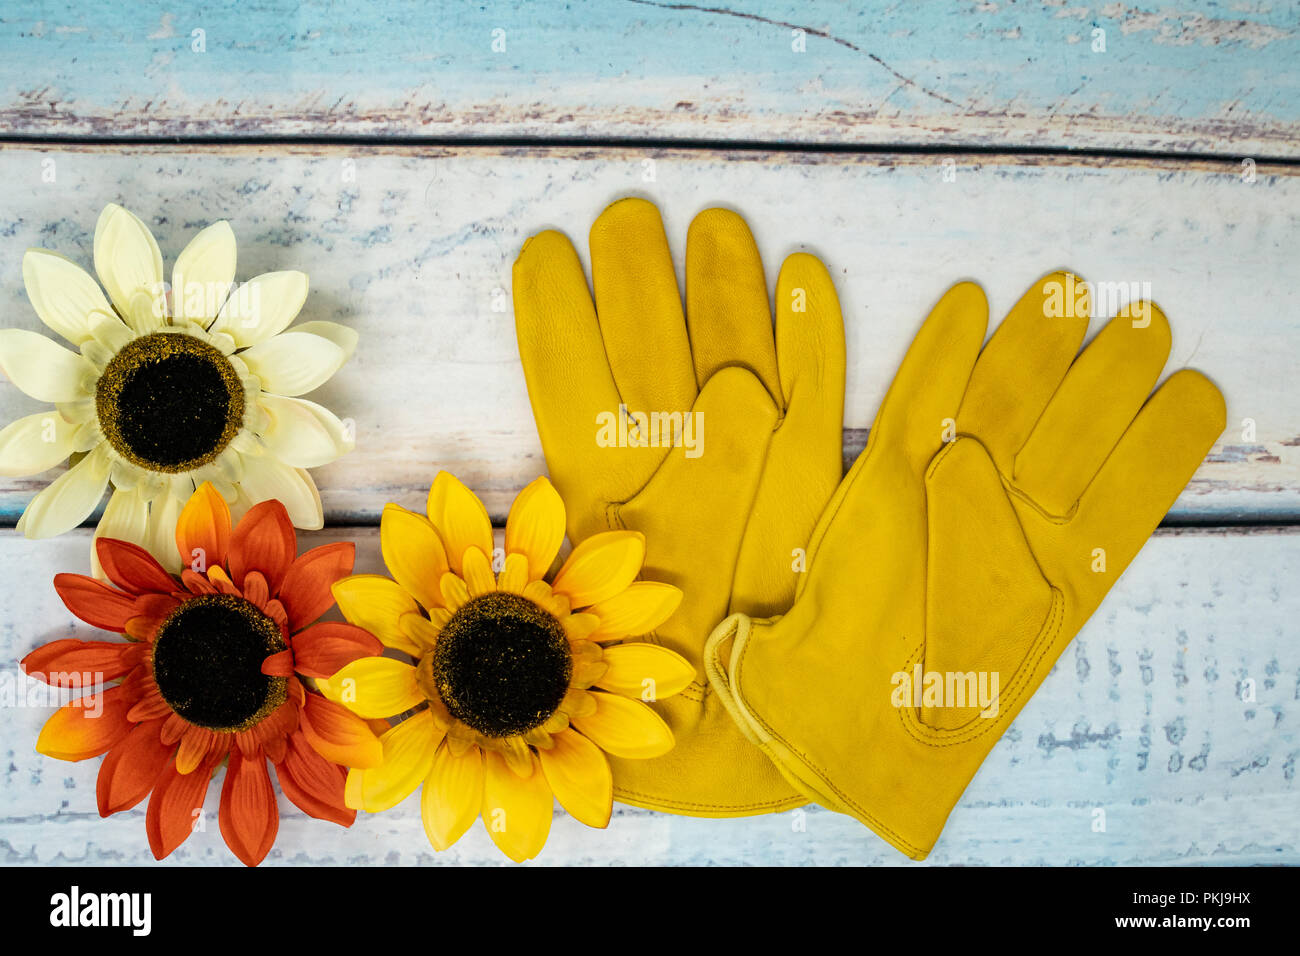 Autumn background scene with yellow leather gloves and bright sunflowers. Concept for fall gardening and yard work - Stock Image